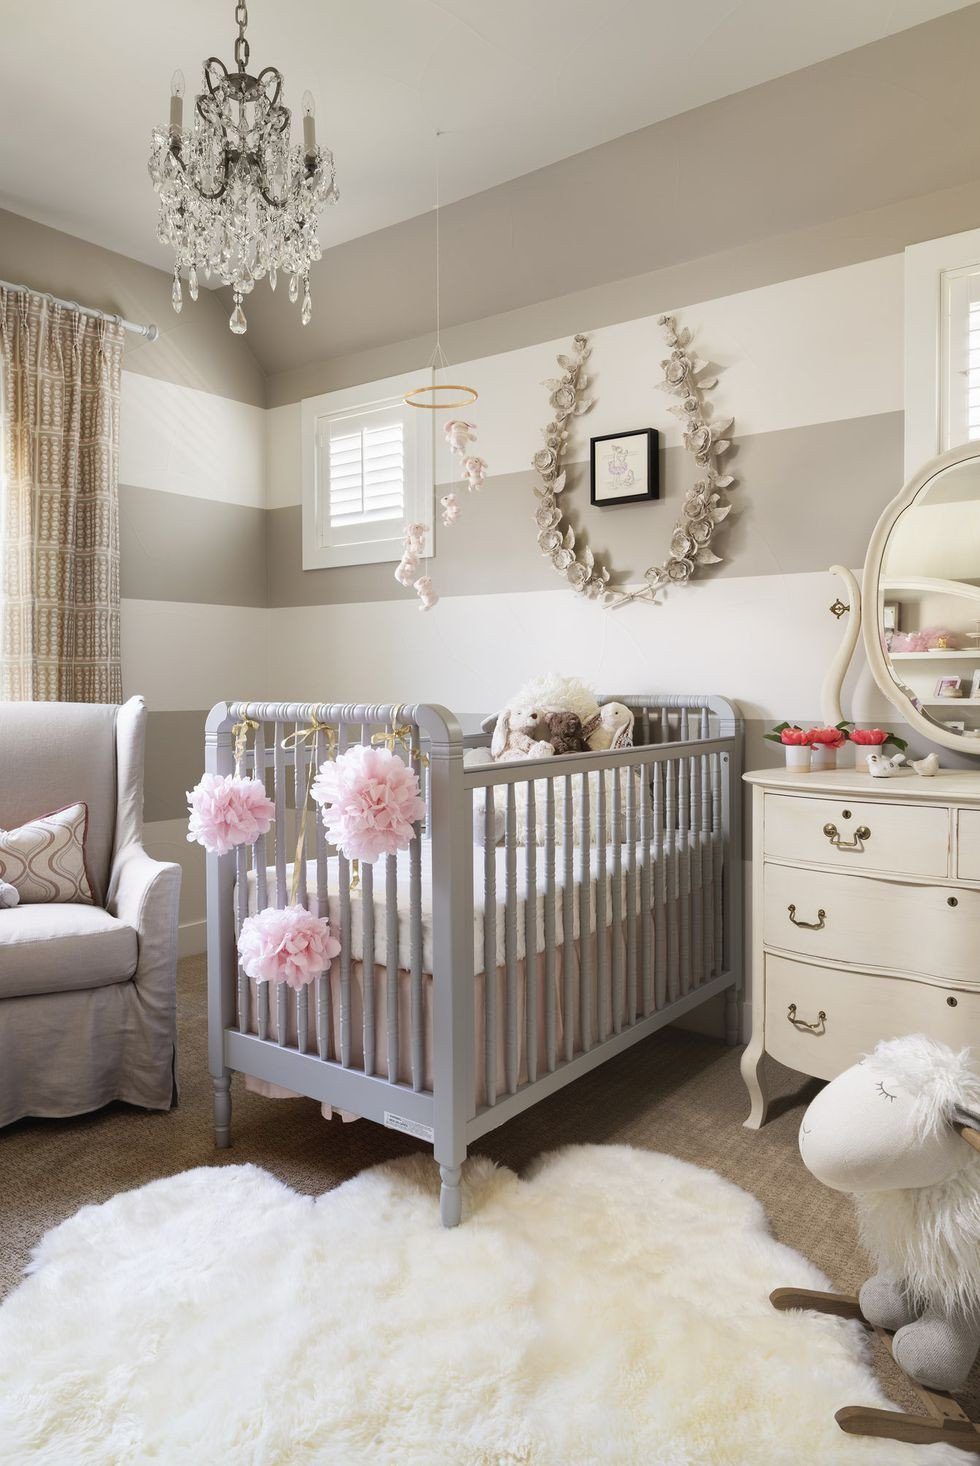 Boy Baby Bedroom Ideas Beautiful Stylish Baby Rooms even Adults Would Adore